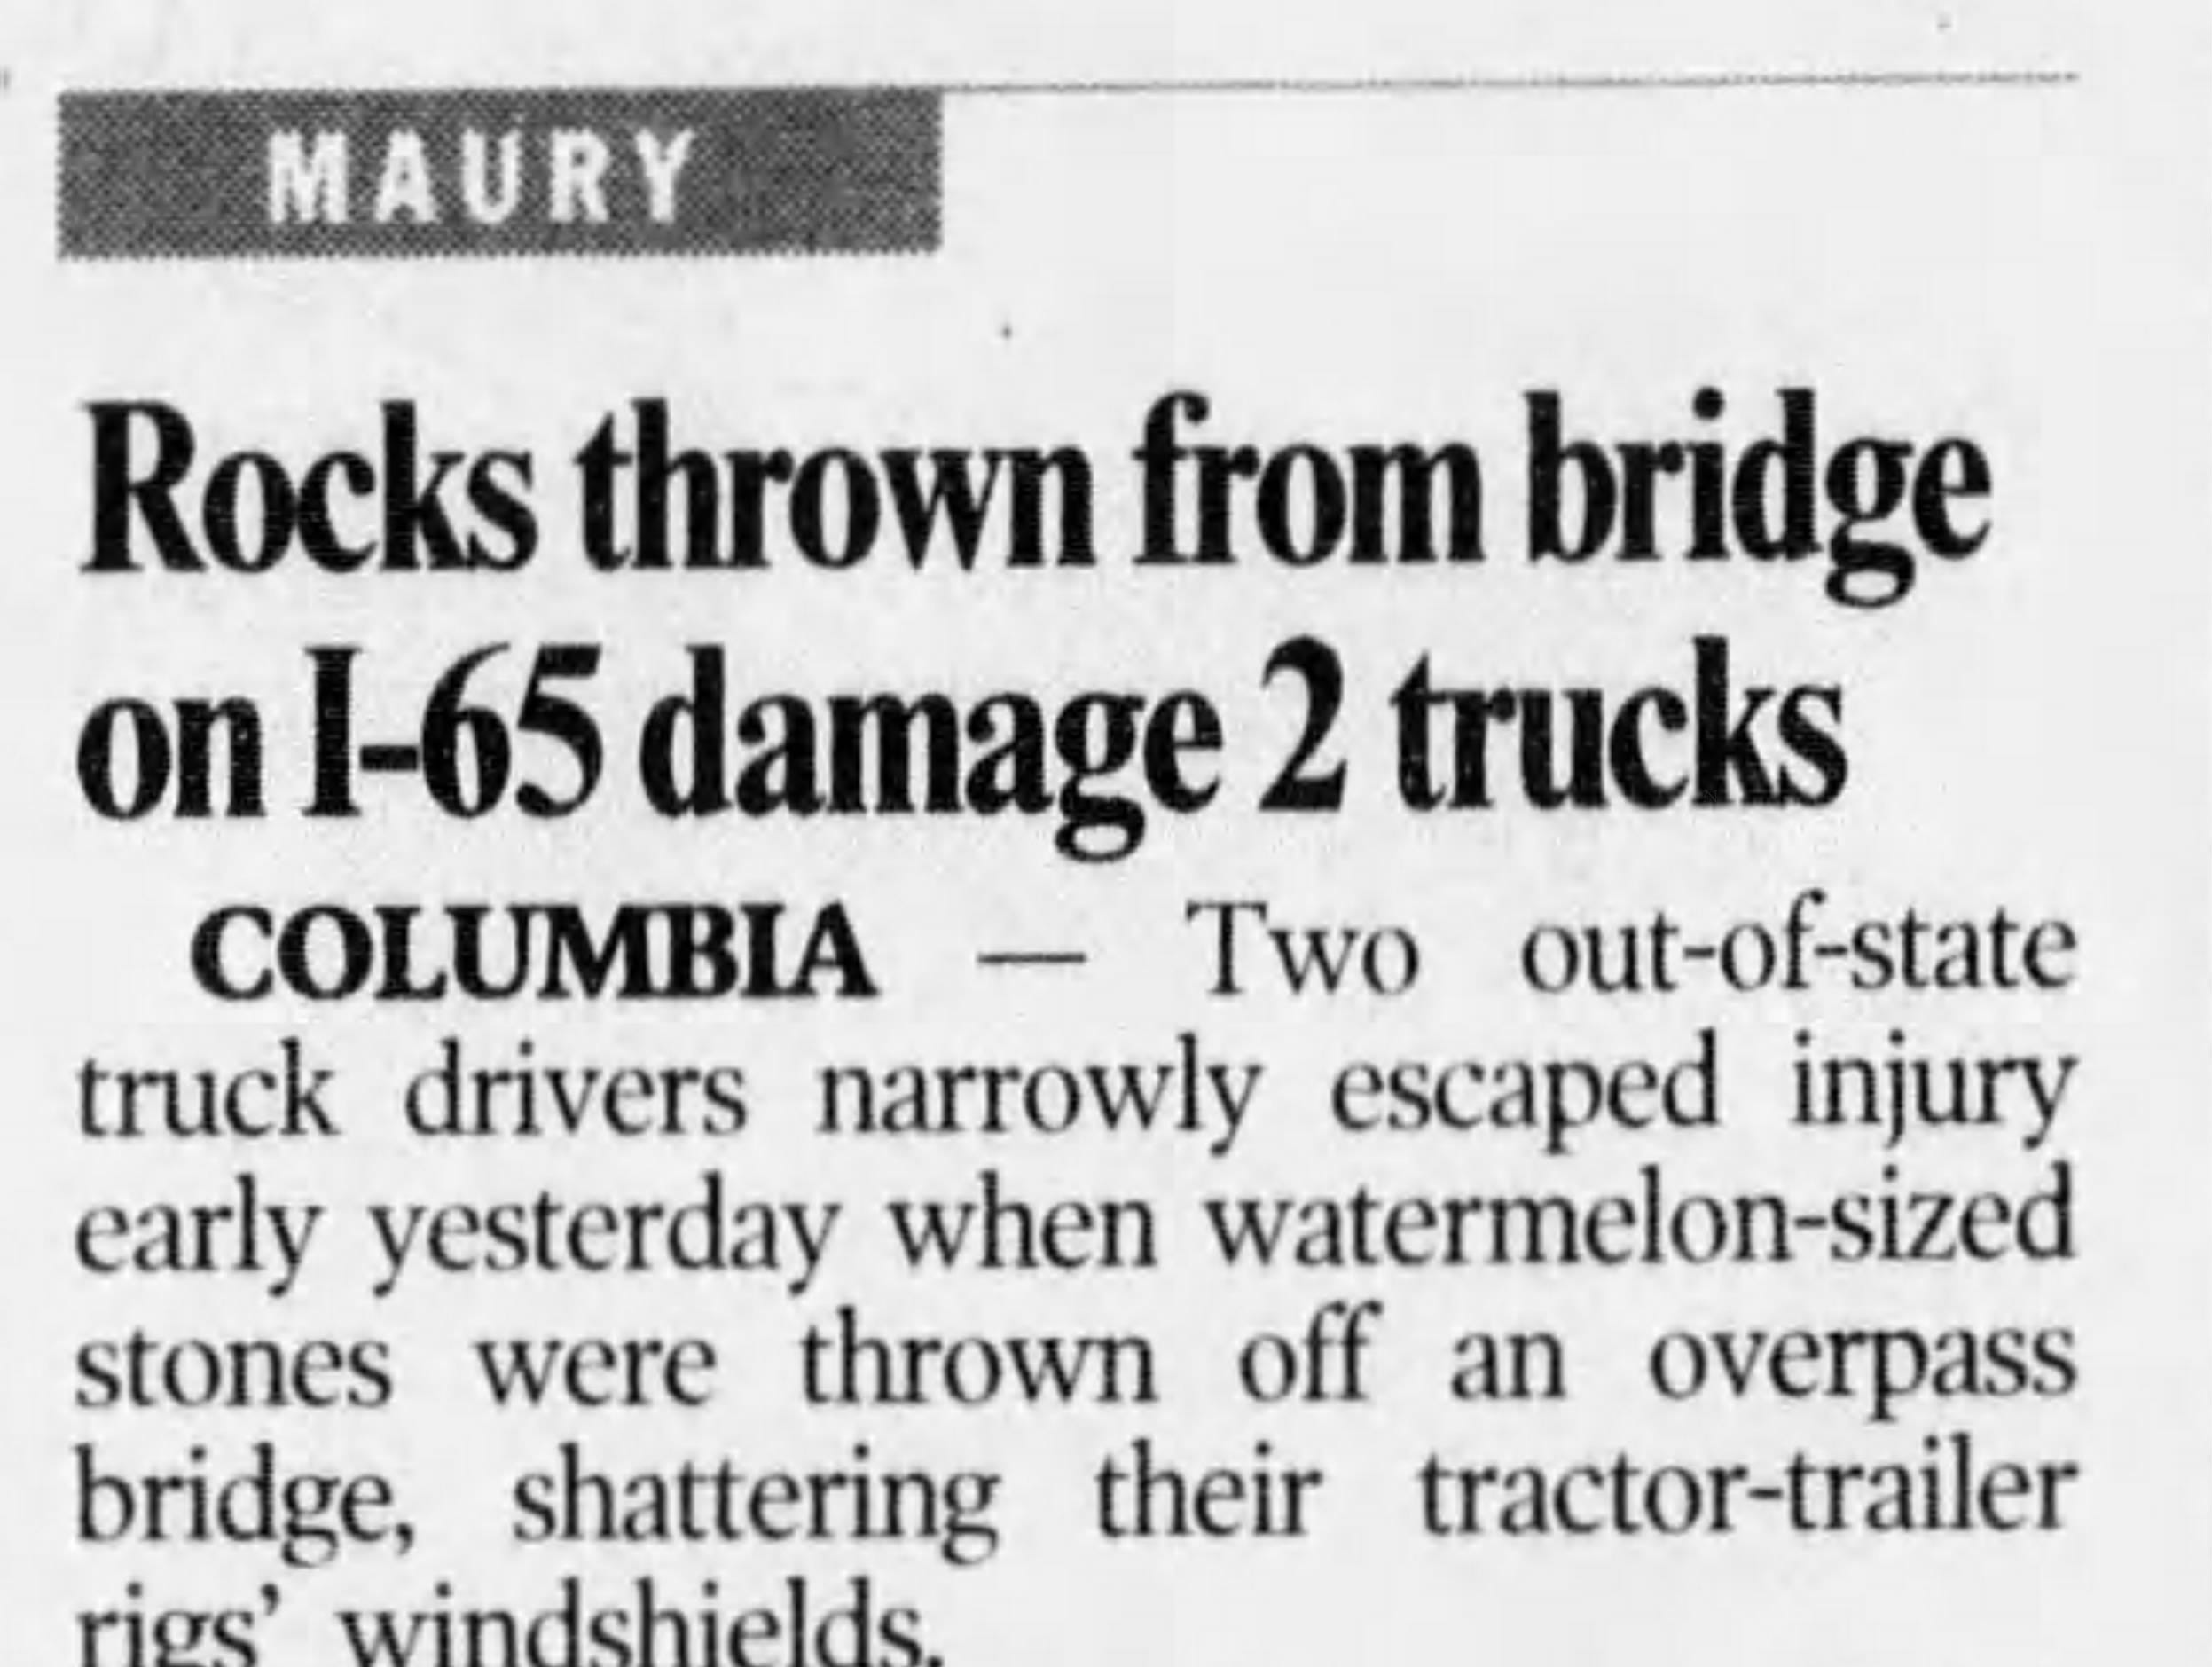 A Feb. 13, 2001, issue of The Tennessean shows a report of rocks thrown off a Maury County bridge striking a vehicle travelling below.